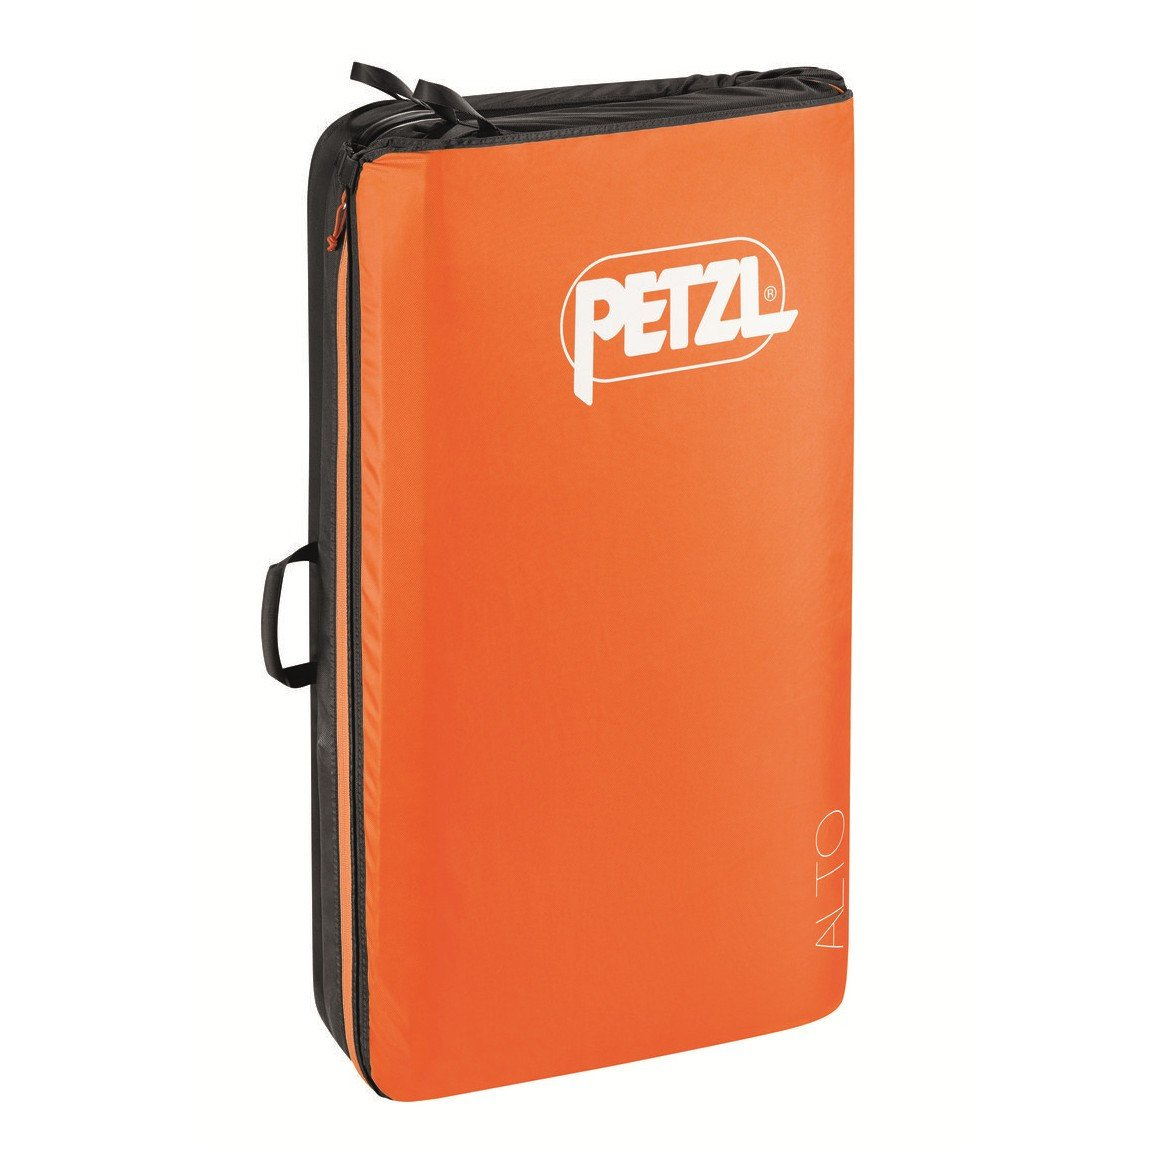 Petzl Alto bouldering crash pad, shown closed and stood up in orange colour